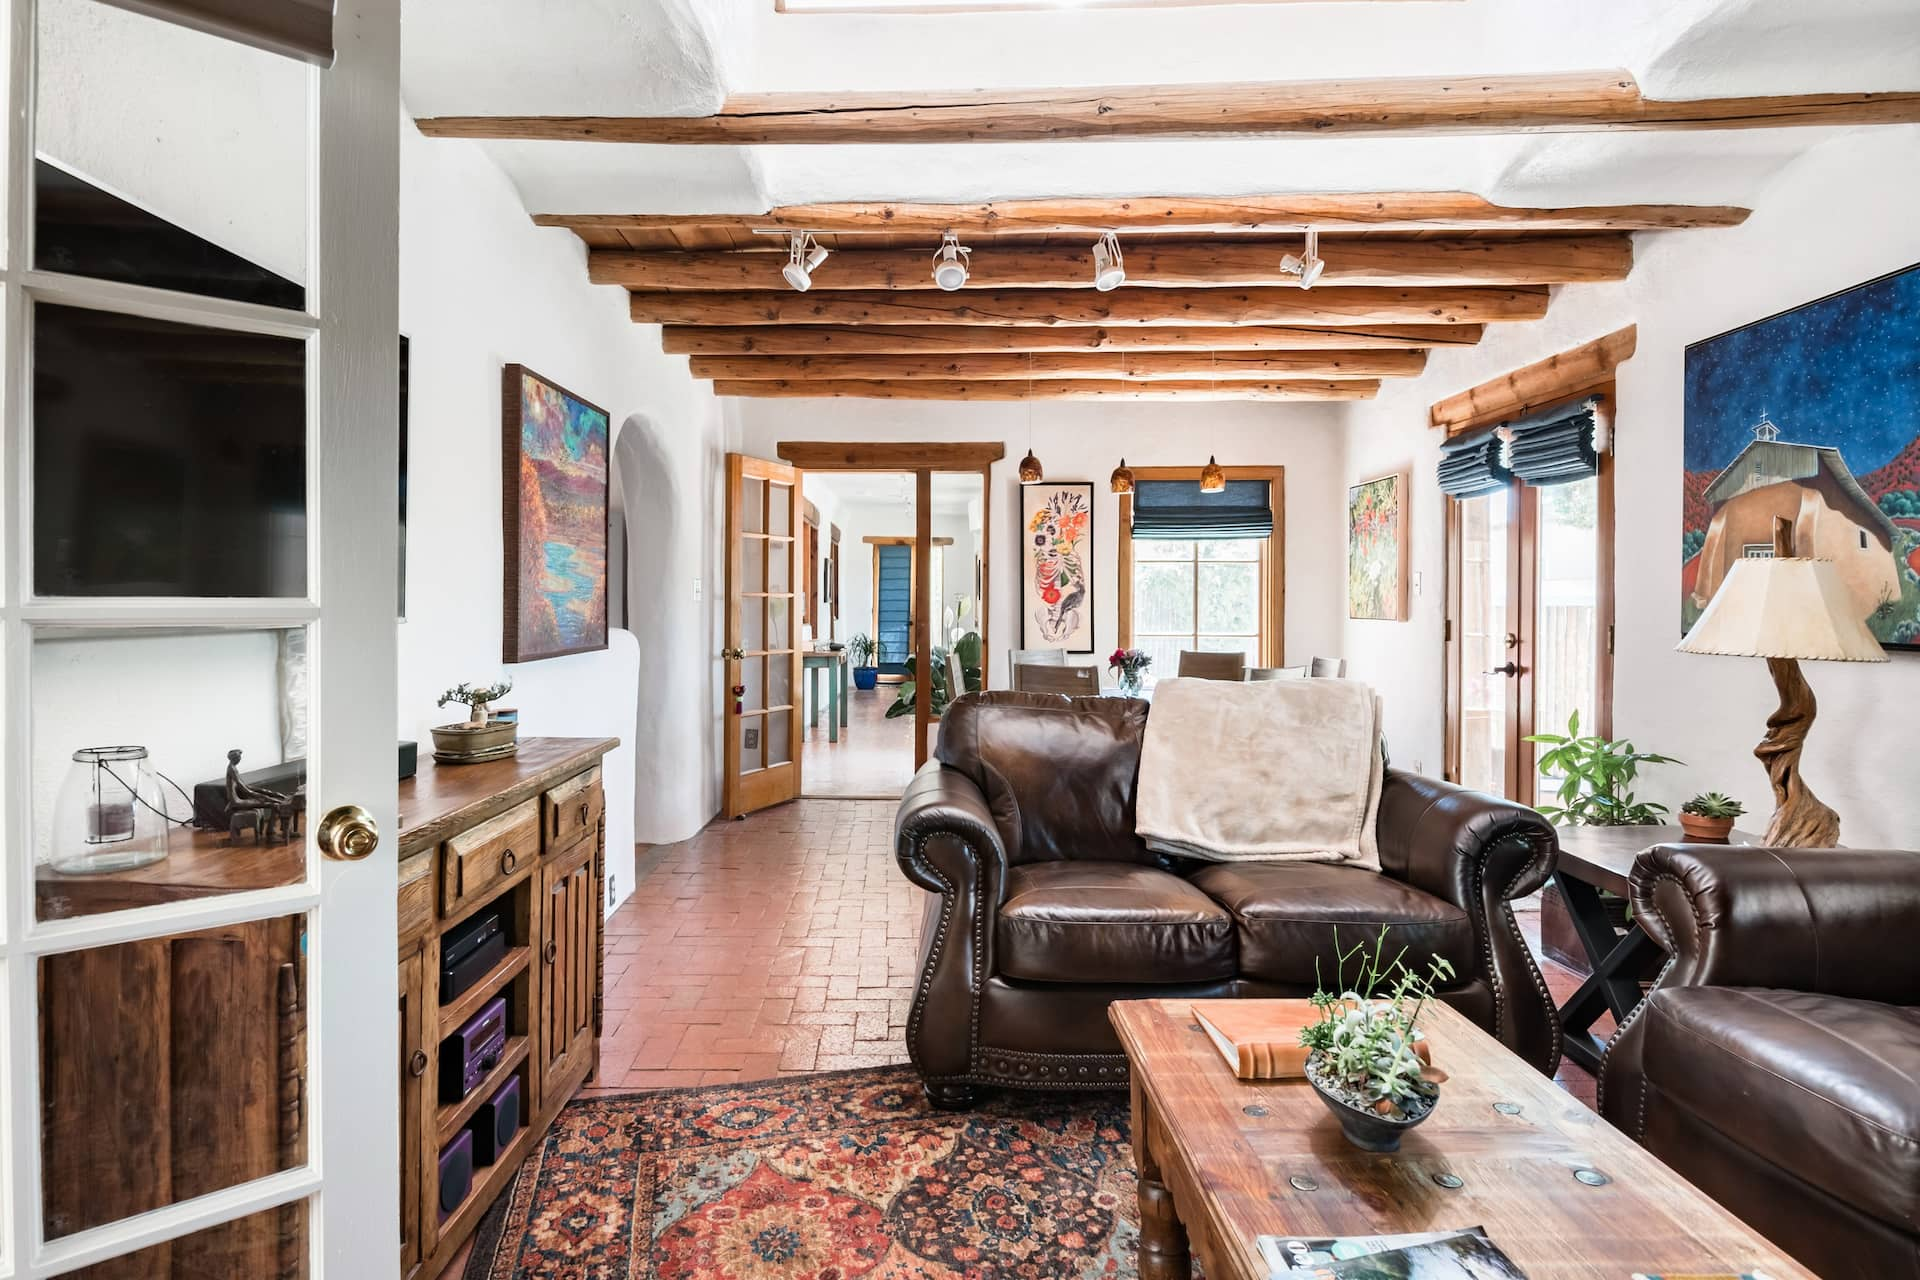 the Casa de Lavanda Airbnb in New Mexico